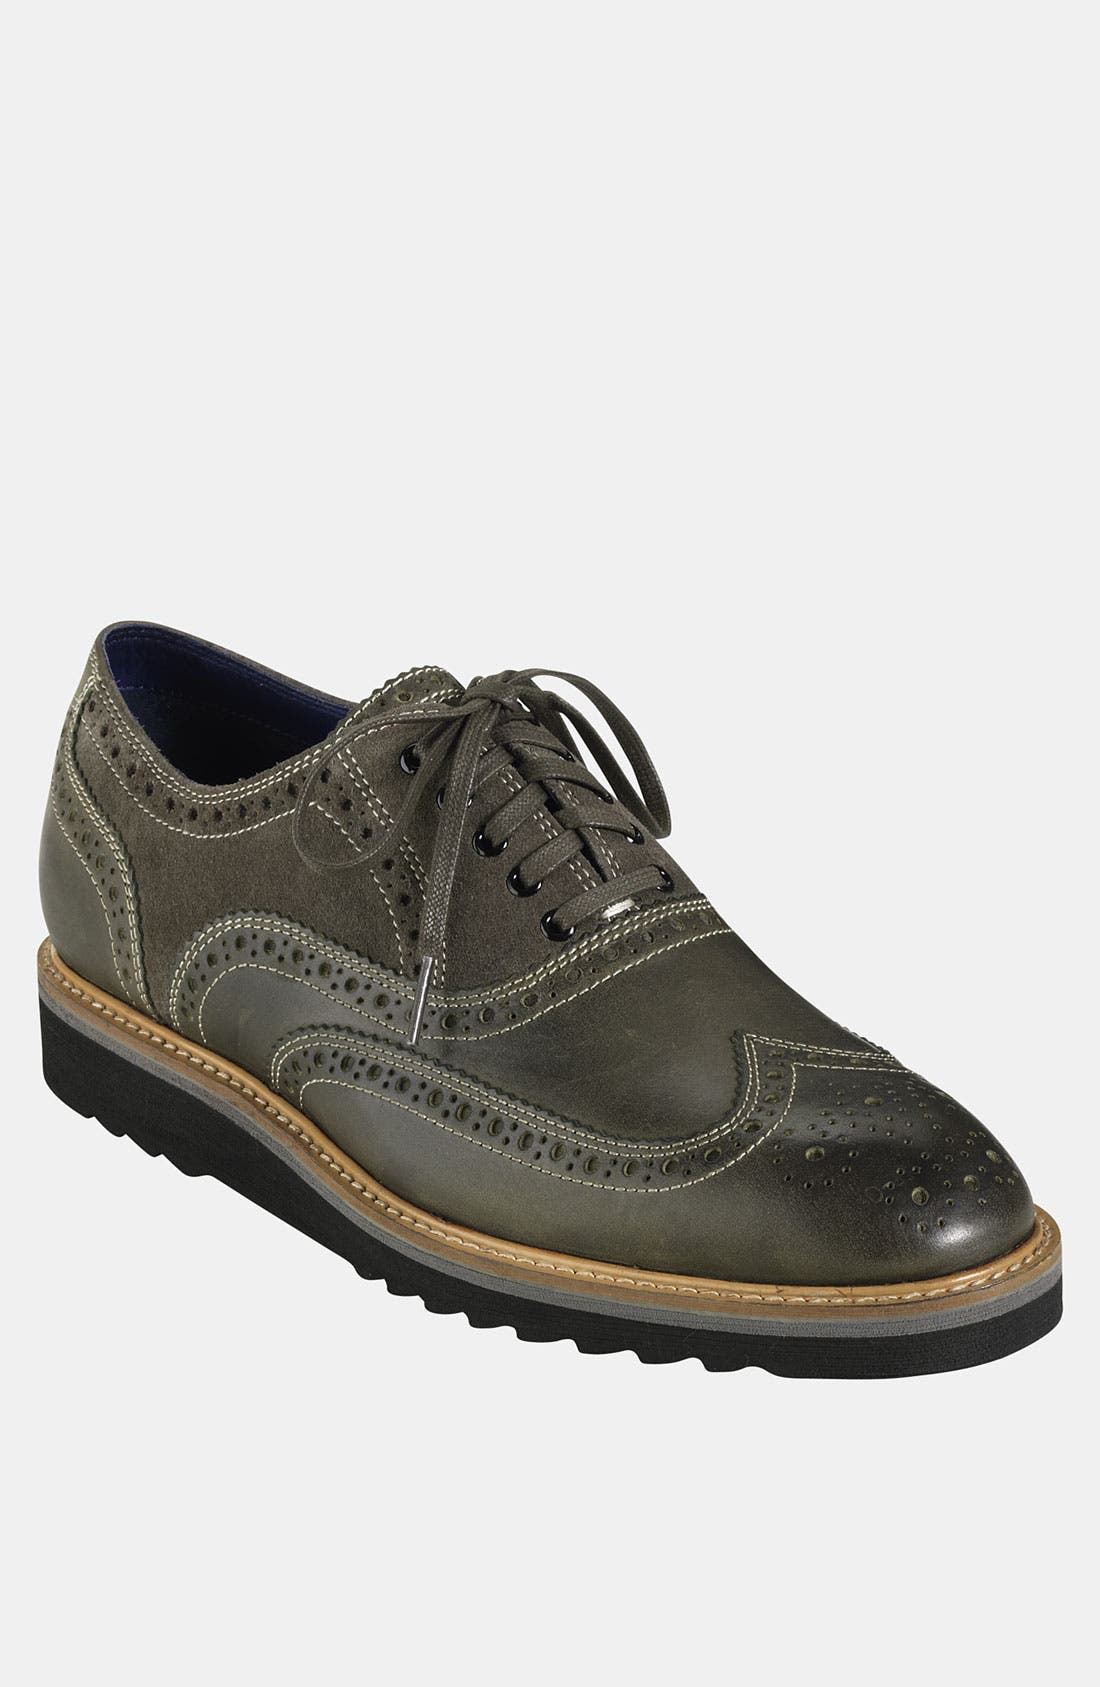 Main Image - Cole Haan 'Air Morris' Casual Wingtip